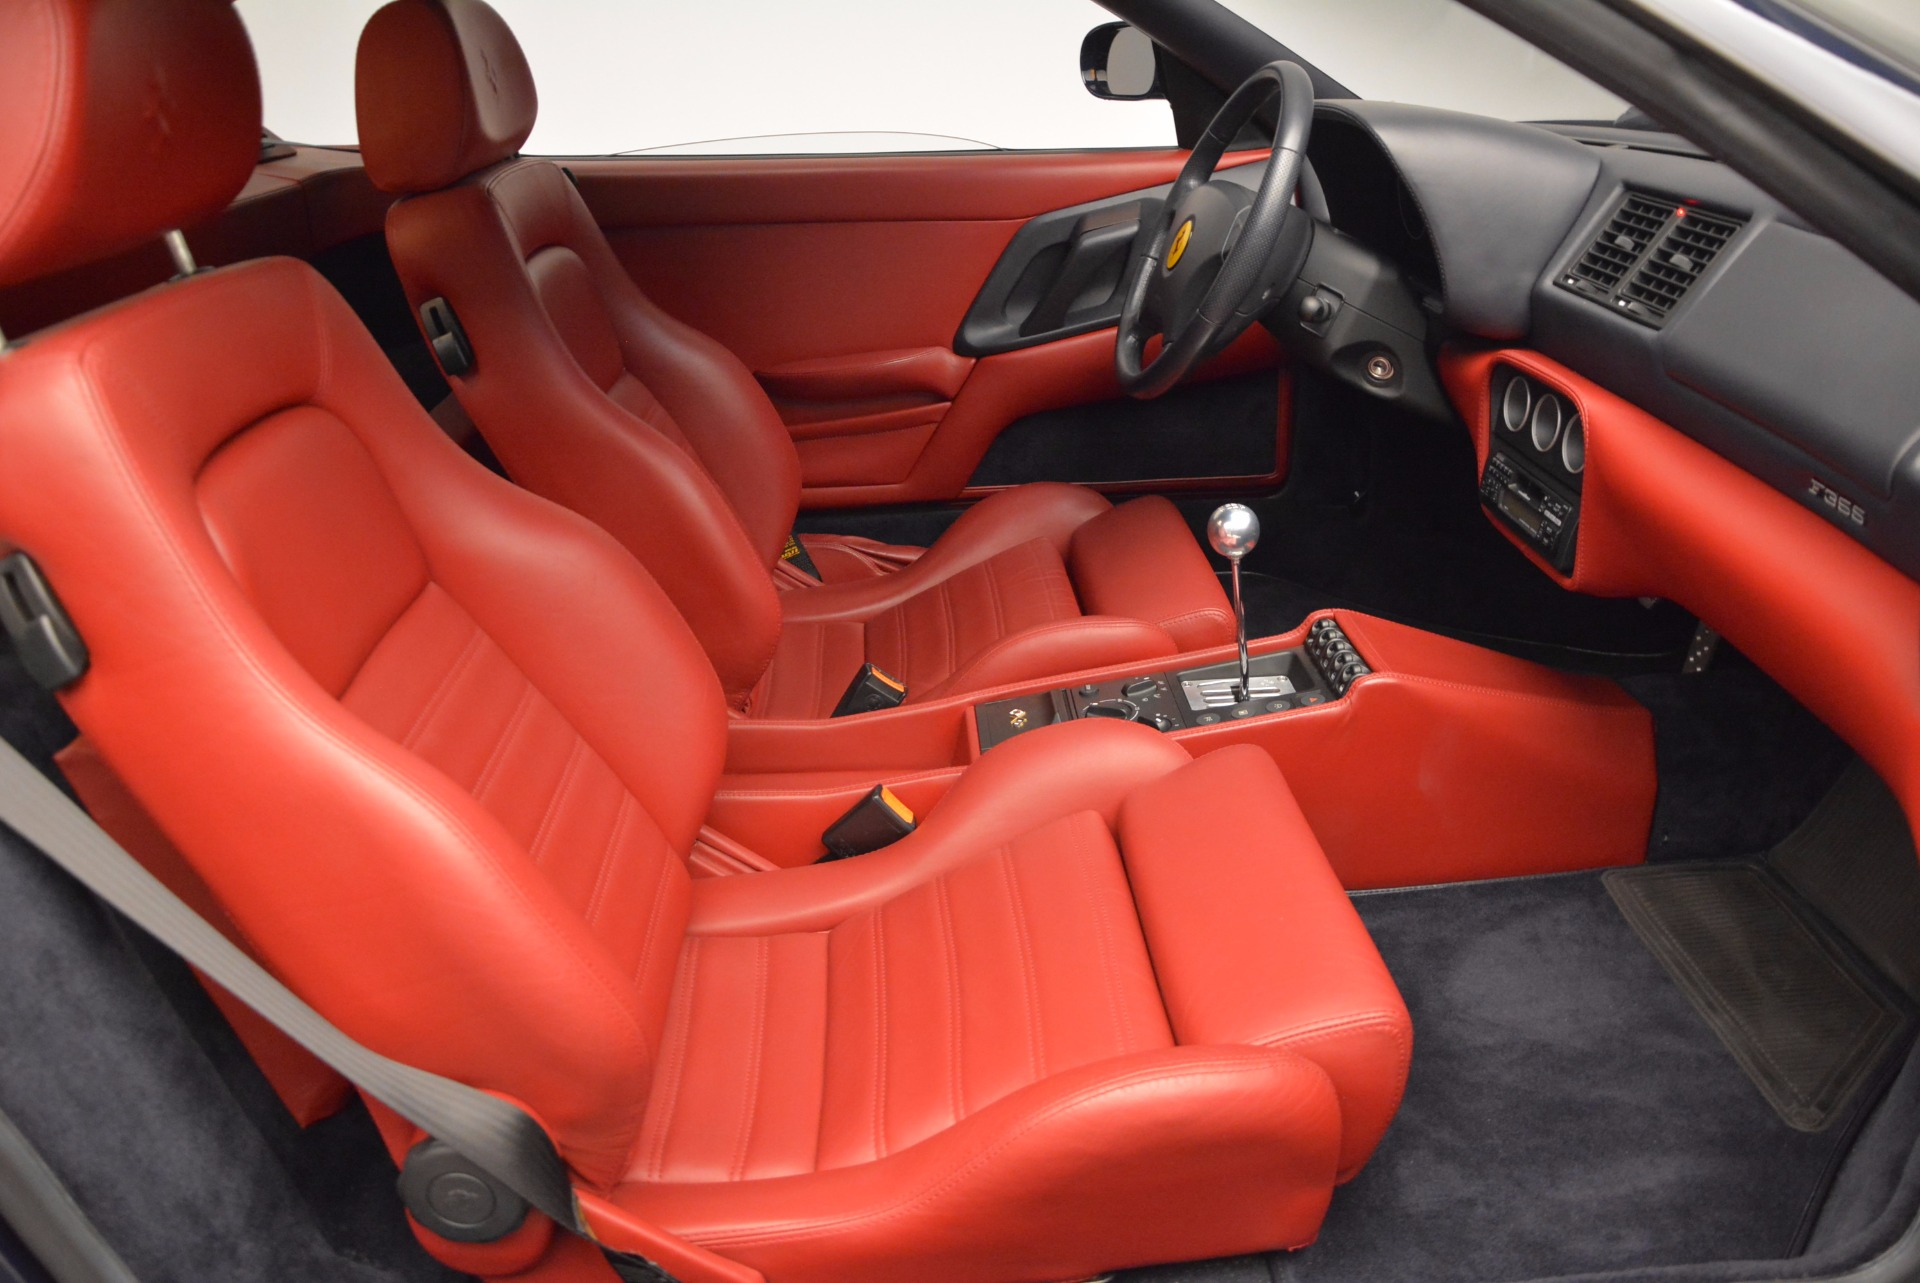 Used 1999 Ferrari 355 Berlinetta For Sale In Greenwich, CT 855_p19